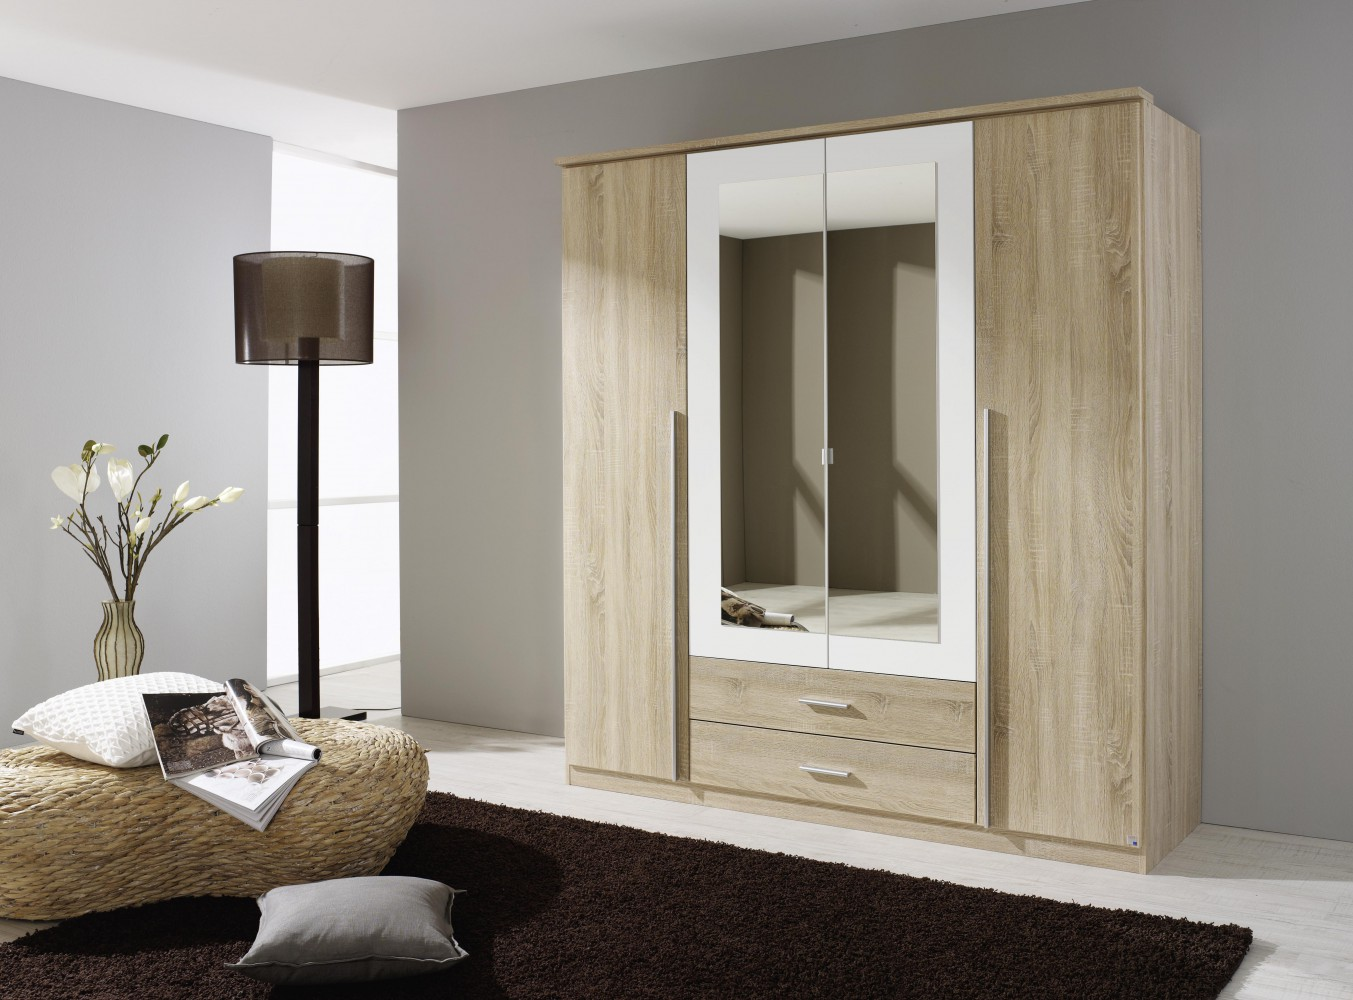 rauch krefeld kleiderschrank 4 trg eiche sonoma alpinweiss mit spiegel b181 cm. Black Bedroom Furniture Sets. Home Design Ideas